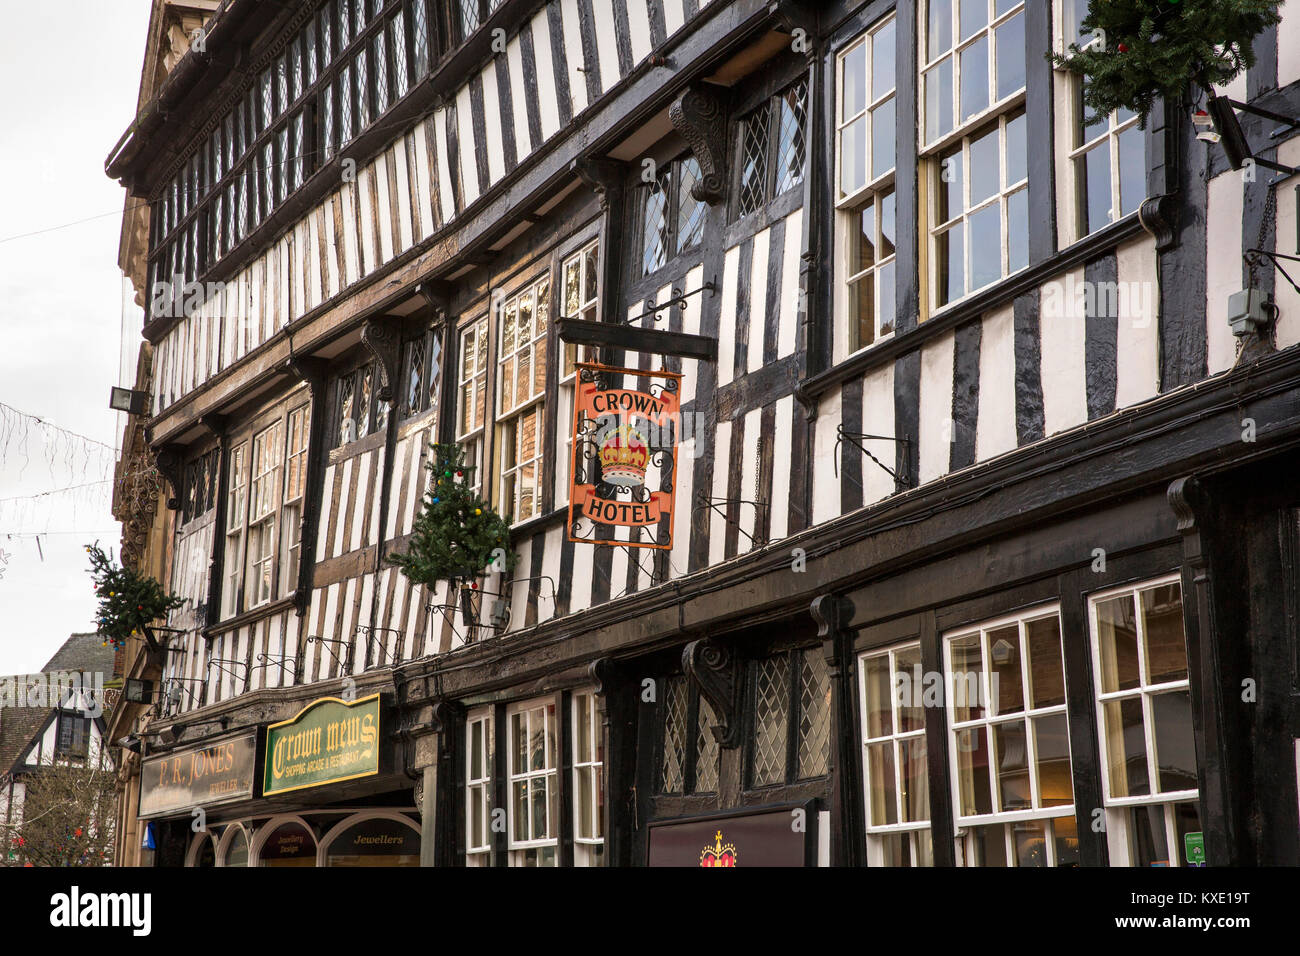 UK, England, Cheshire, Nantwich, High Street, Crown Hotel, wooden structure of 1583 public house - Stock Image